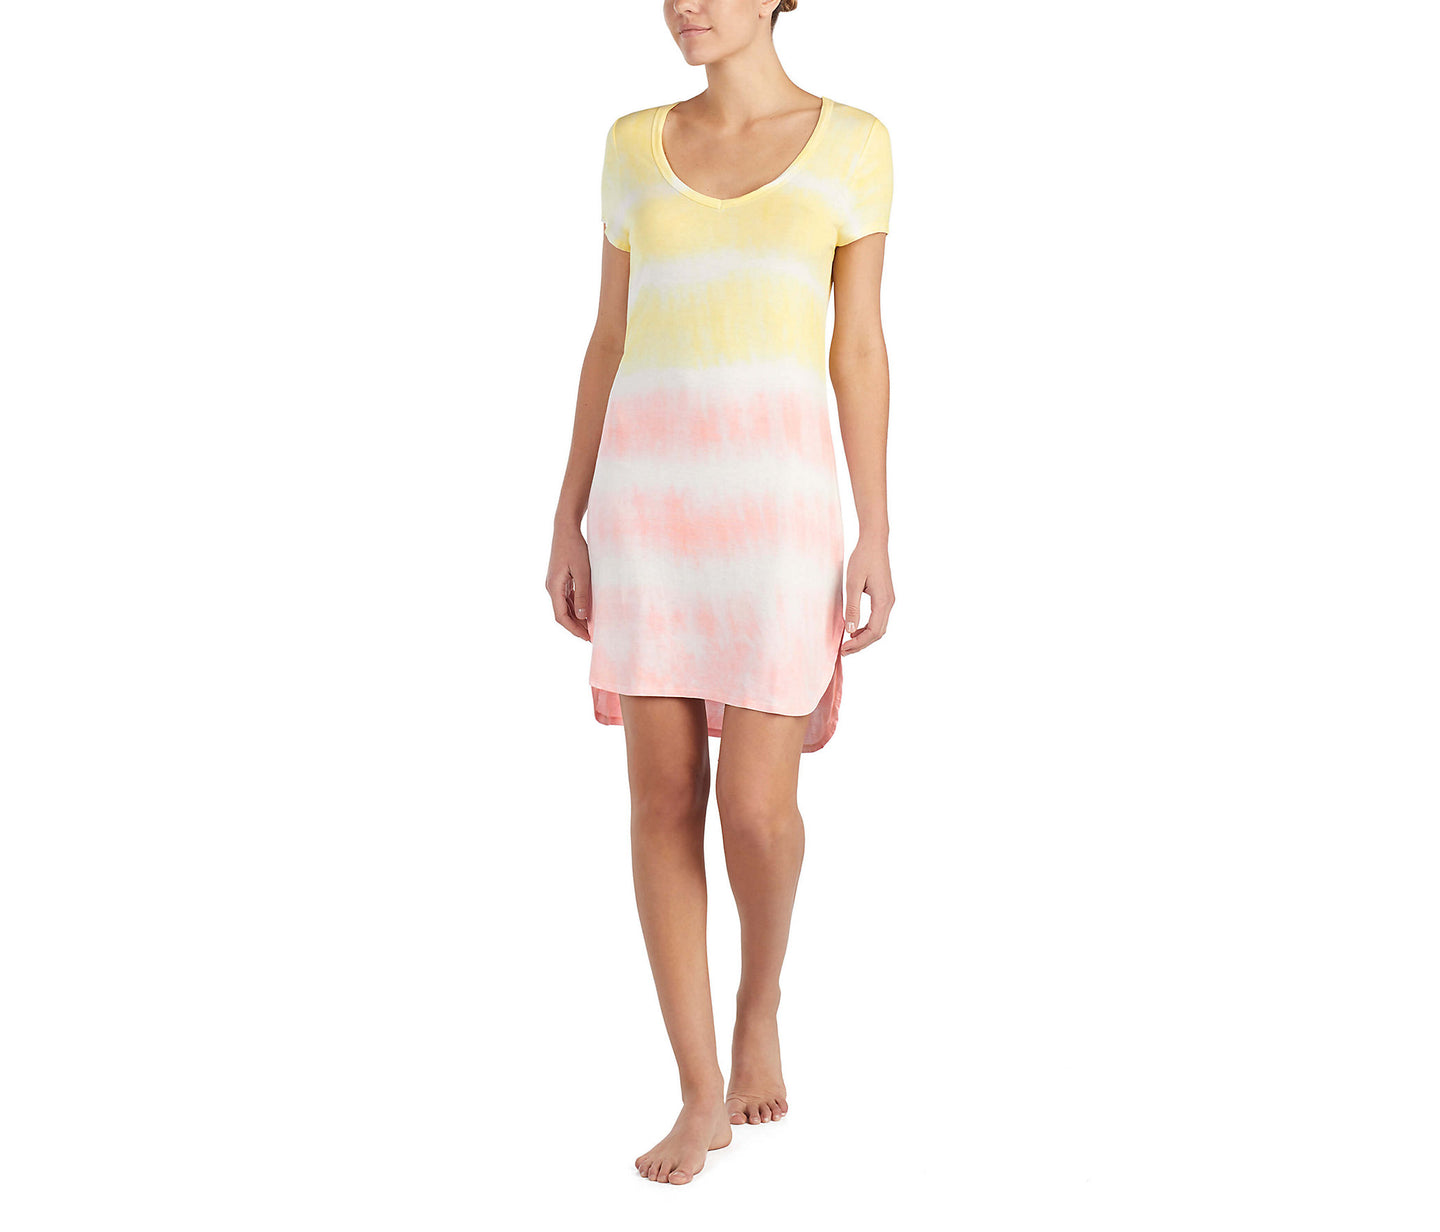 TIE DYE FOR BETSEY SLEEPSHIRT YELLOW MULTI - APPAREL - Betsey Johnson